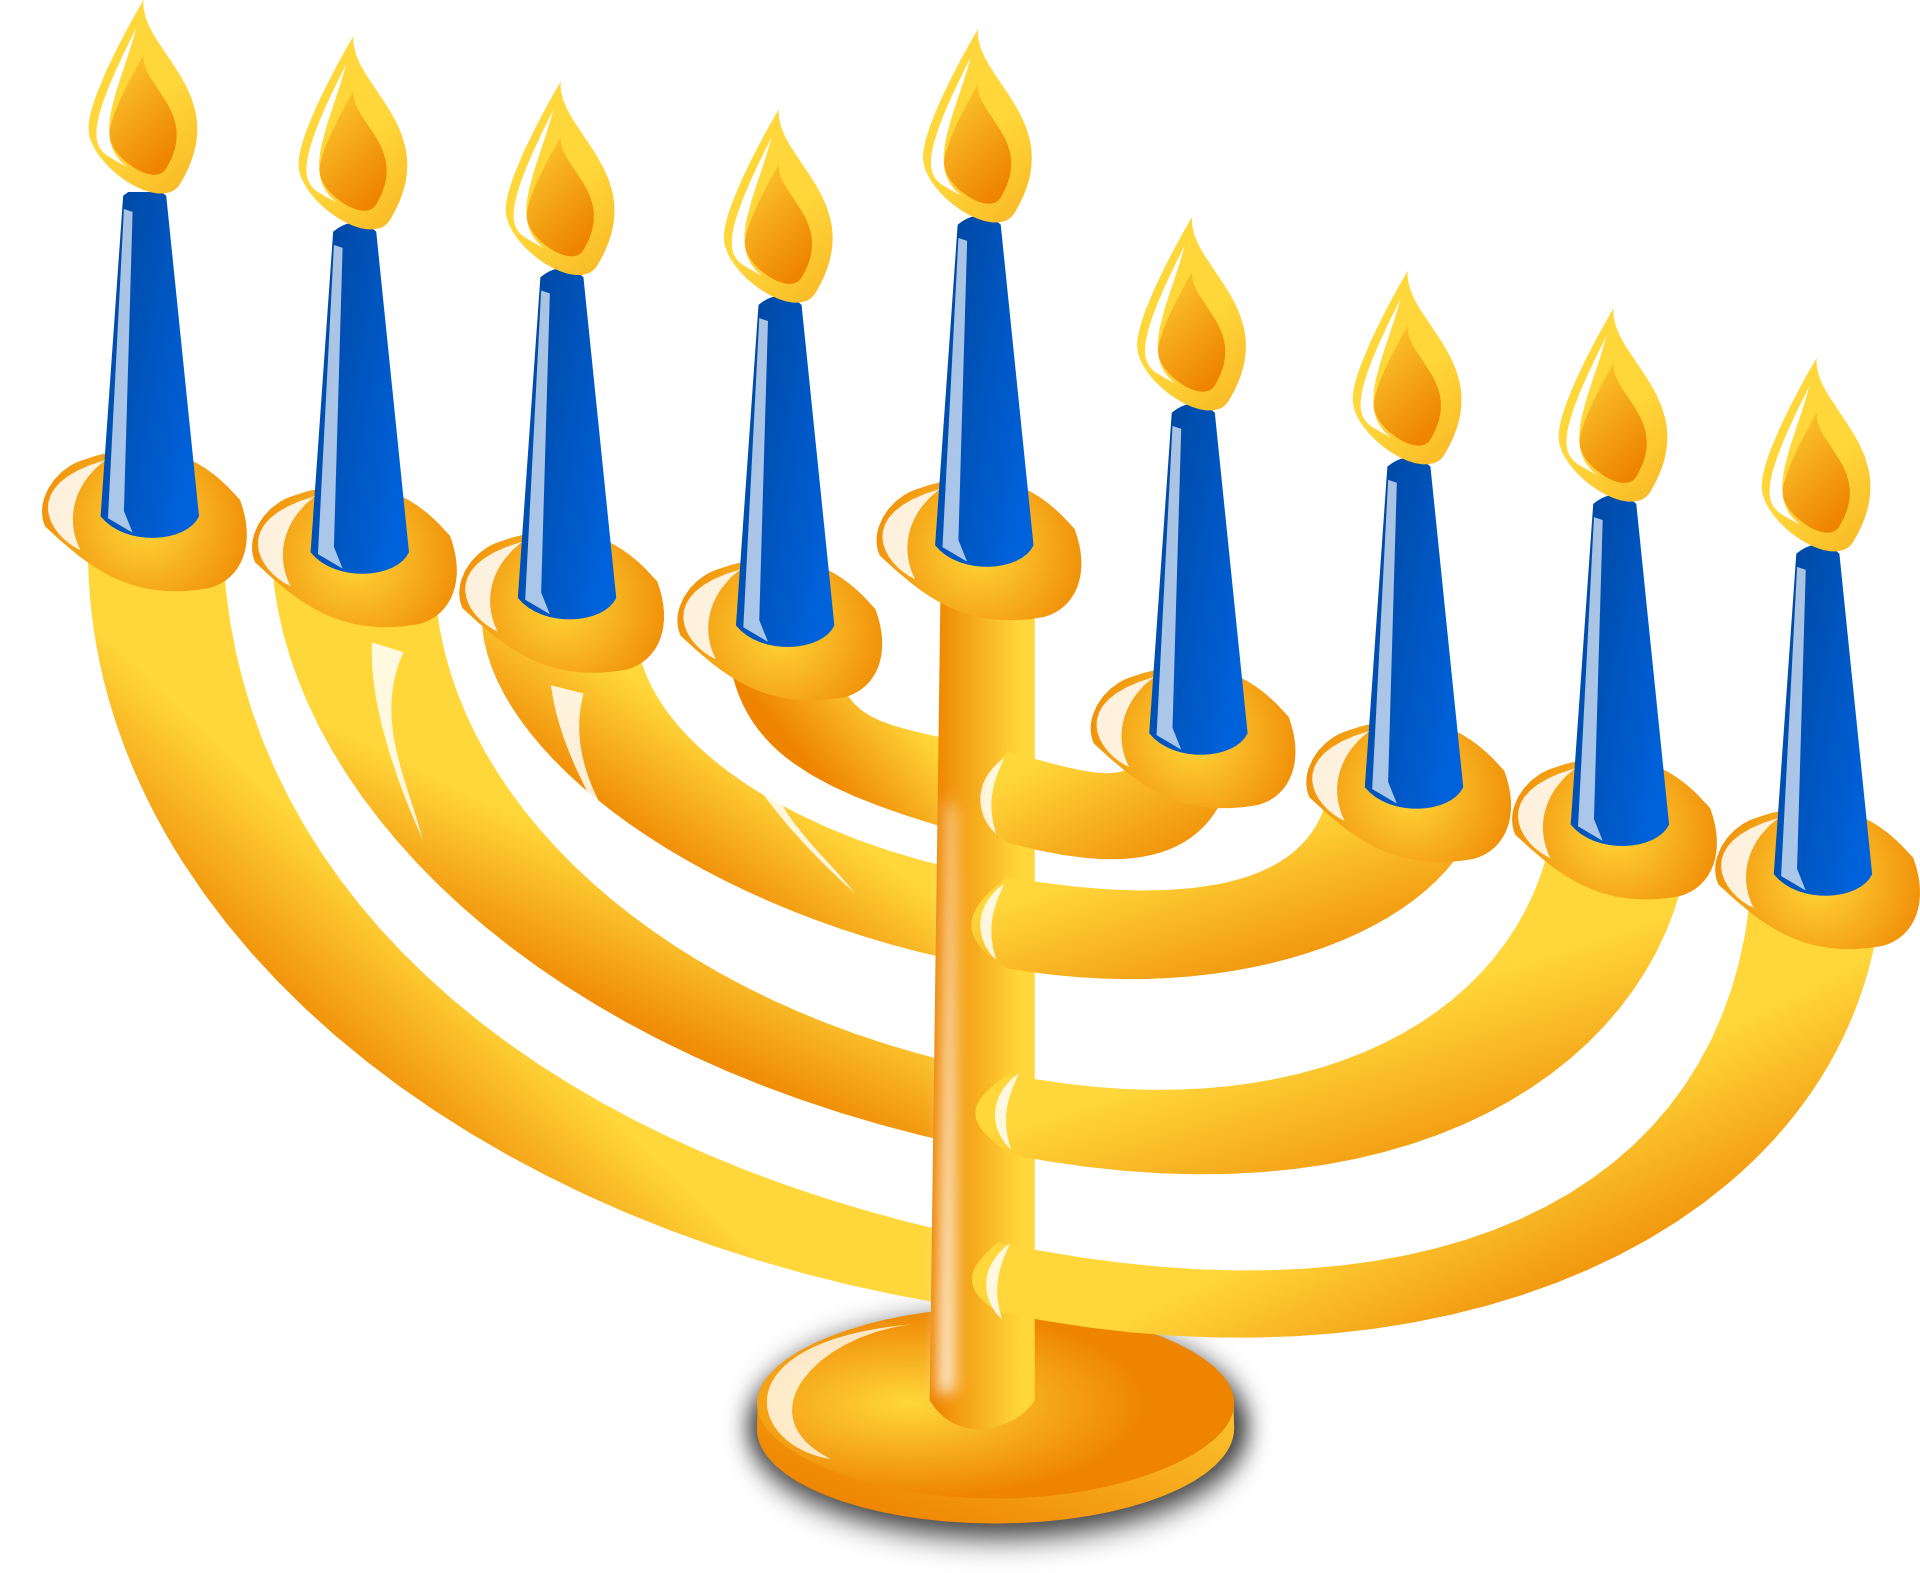 hanukkah the jewish festival of lights